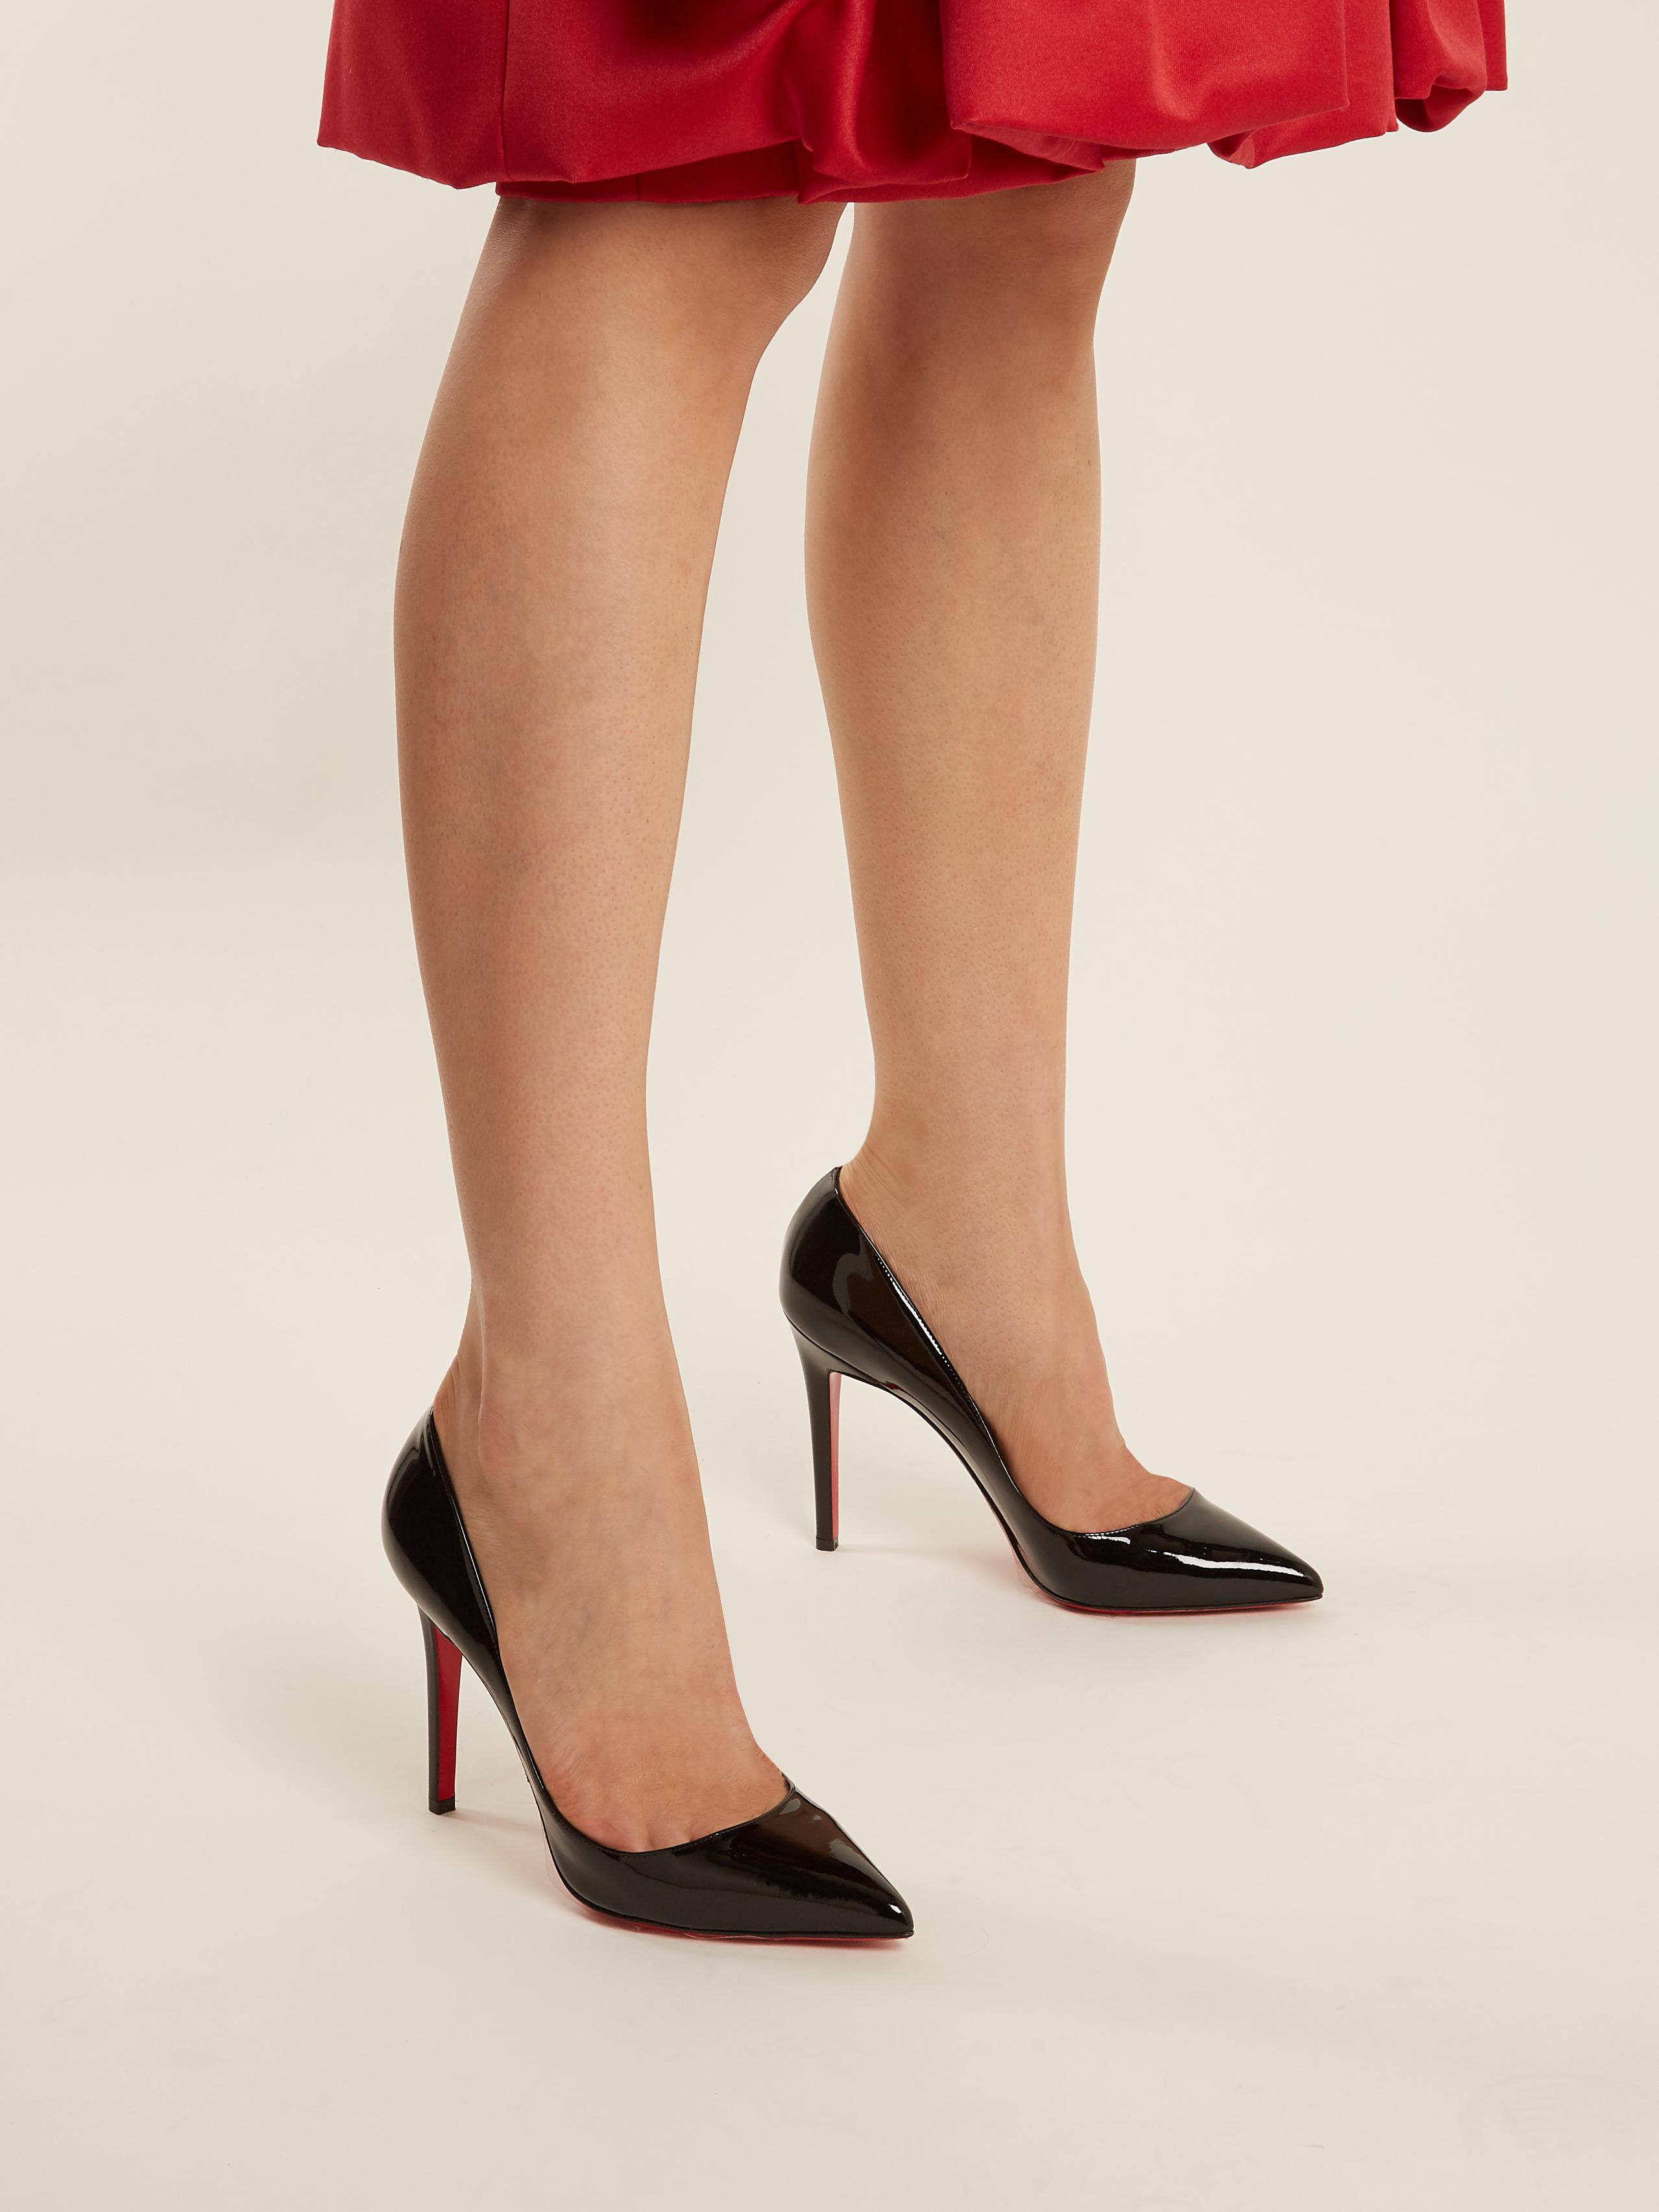 best loved a1f63 eeda3 Christian Louboutin Pigalle 100mm Patent-leather Pumps in ...